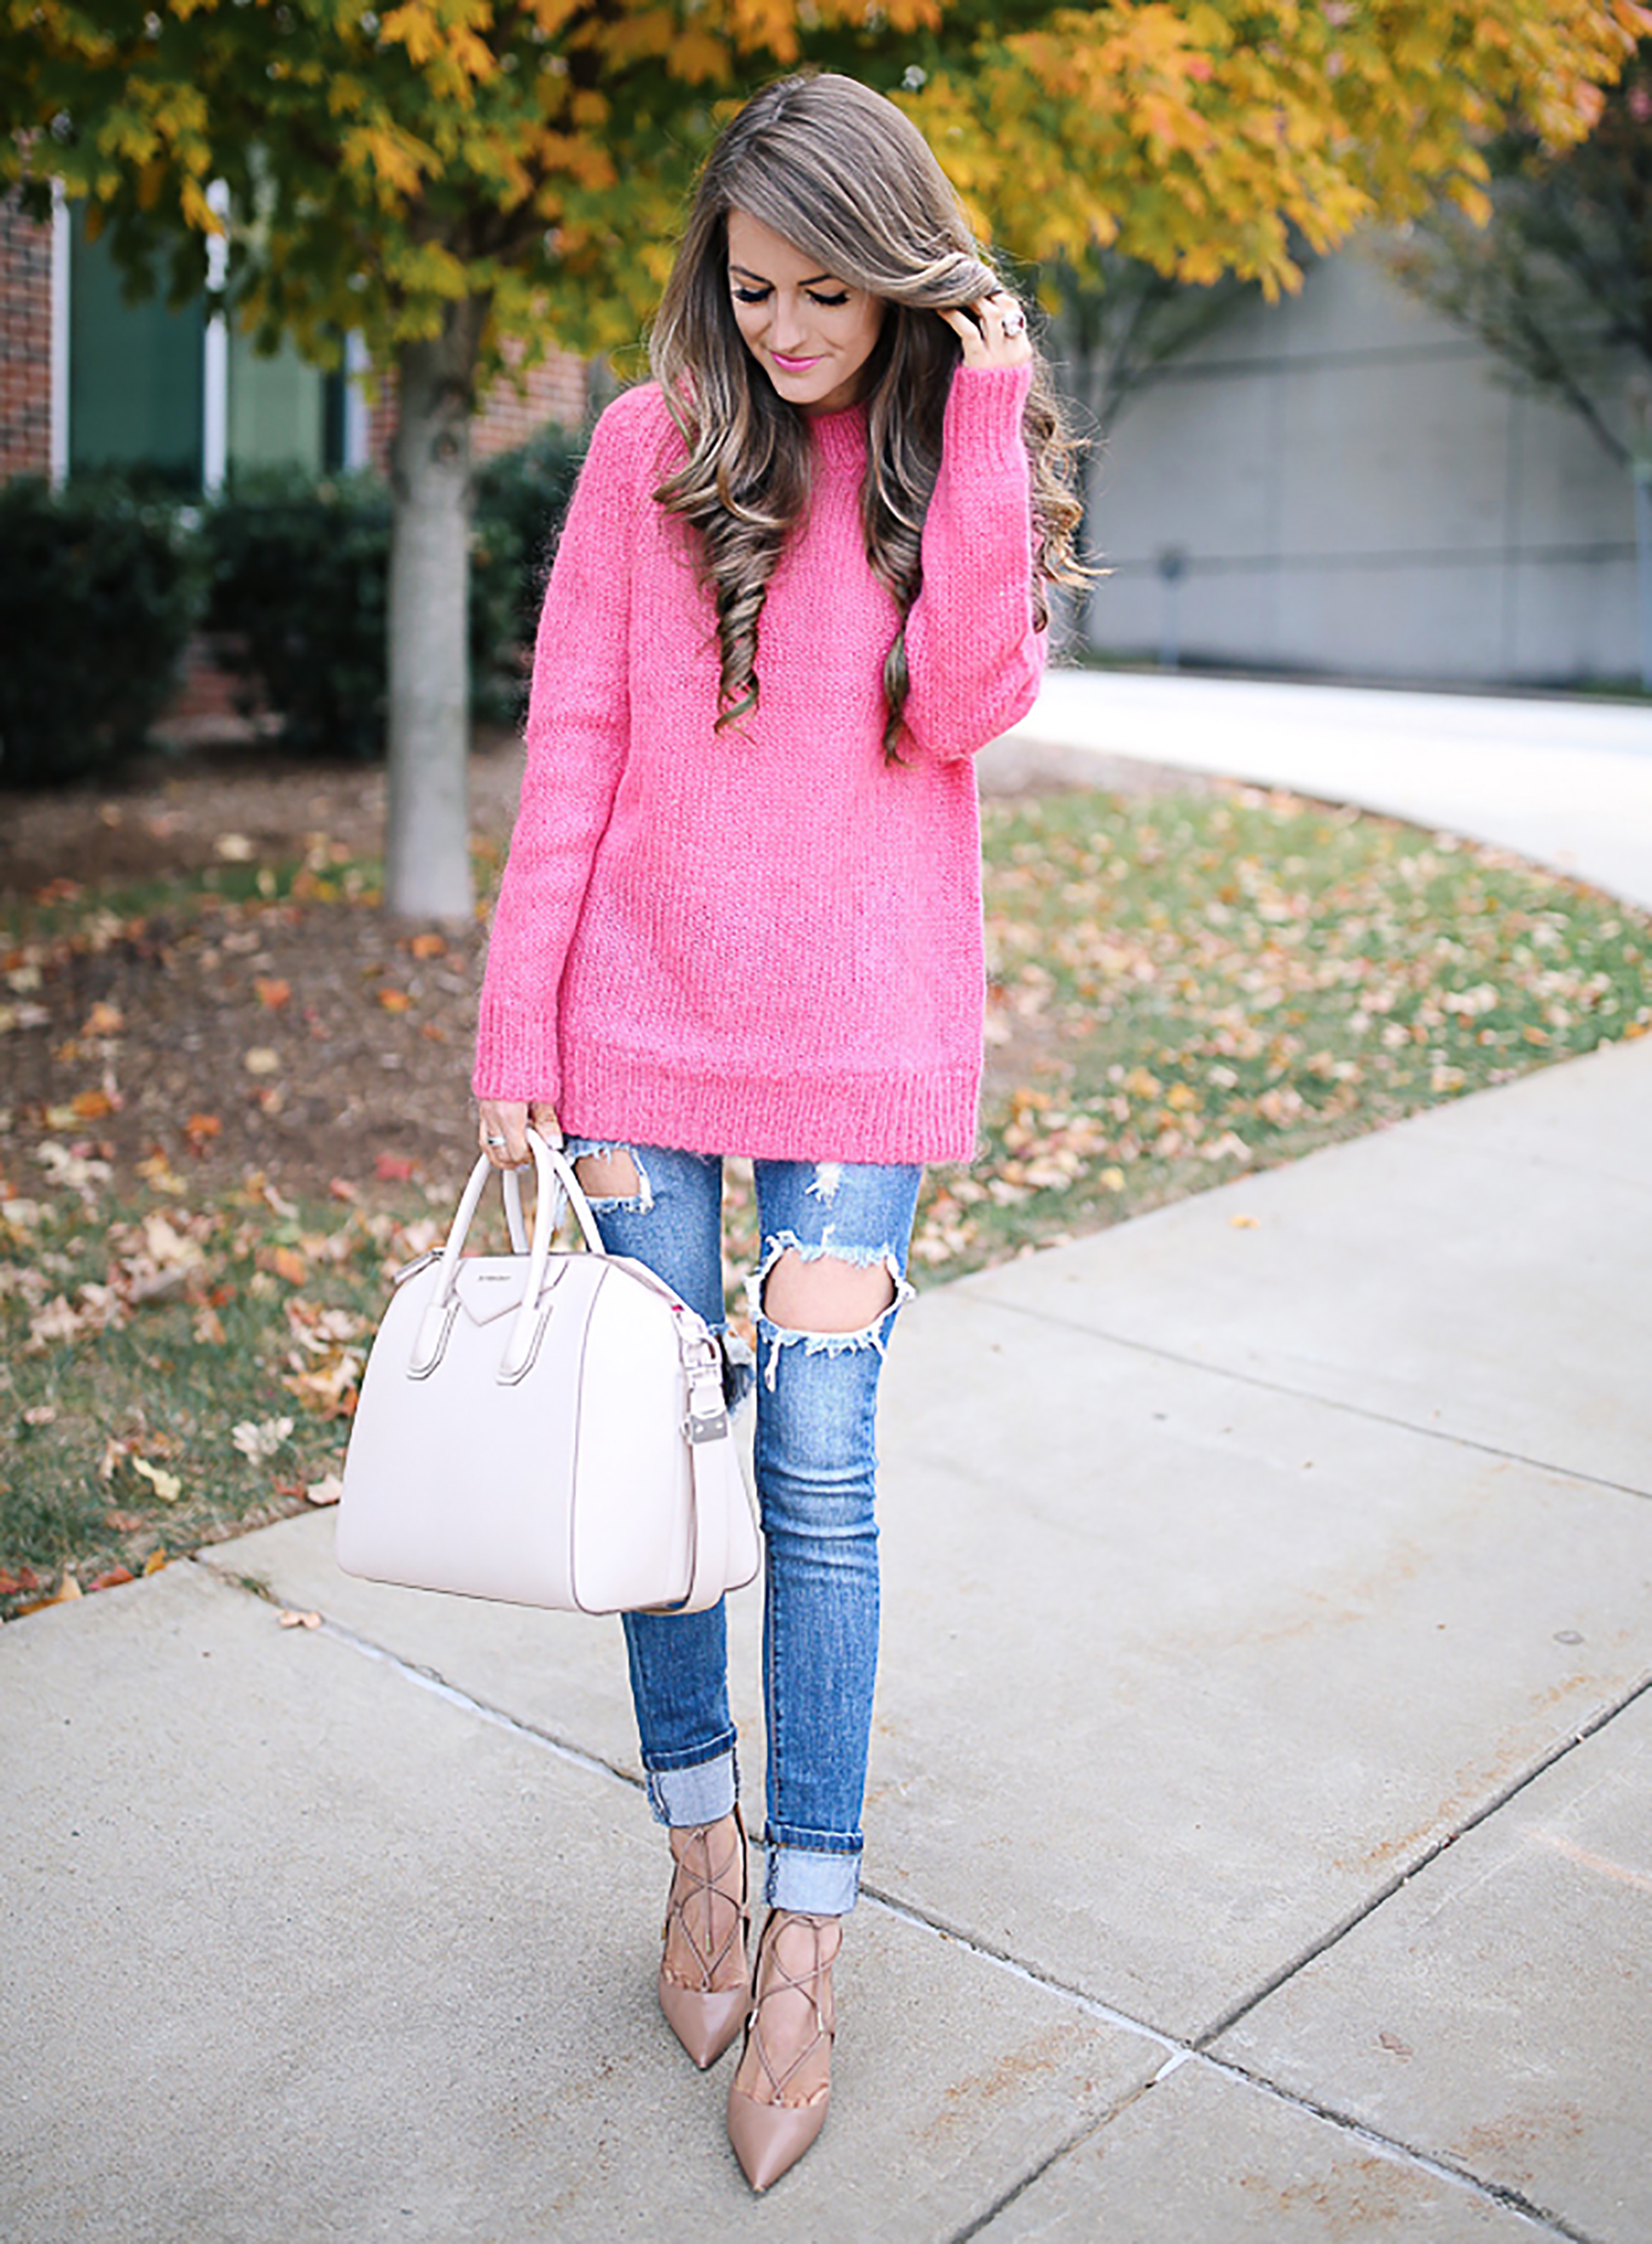 Sydne Style shows pink outfit ideas for fall with fashion blogger southern curls pearls in hot pink sweater